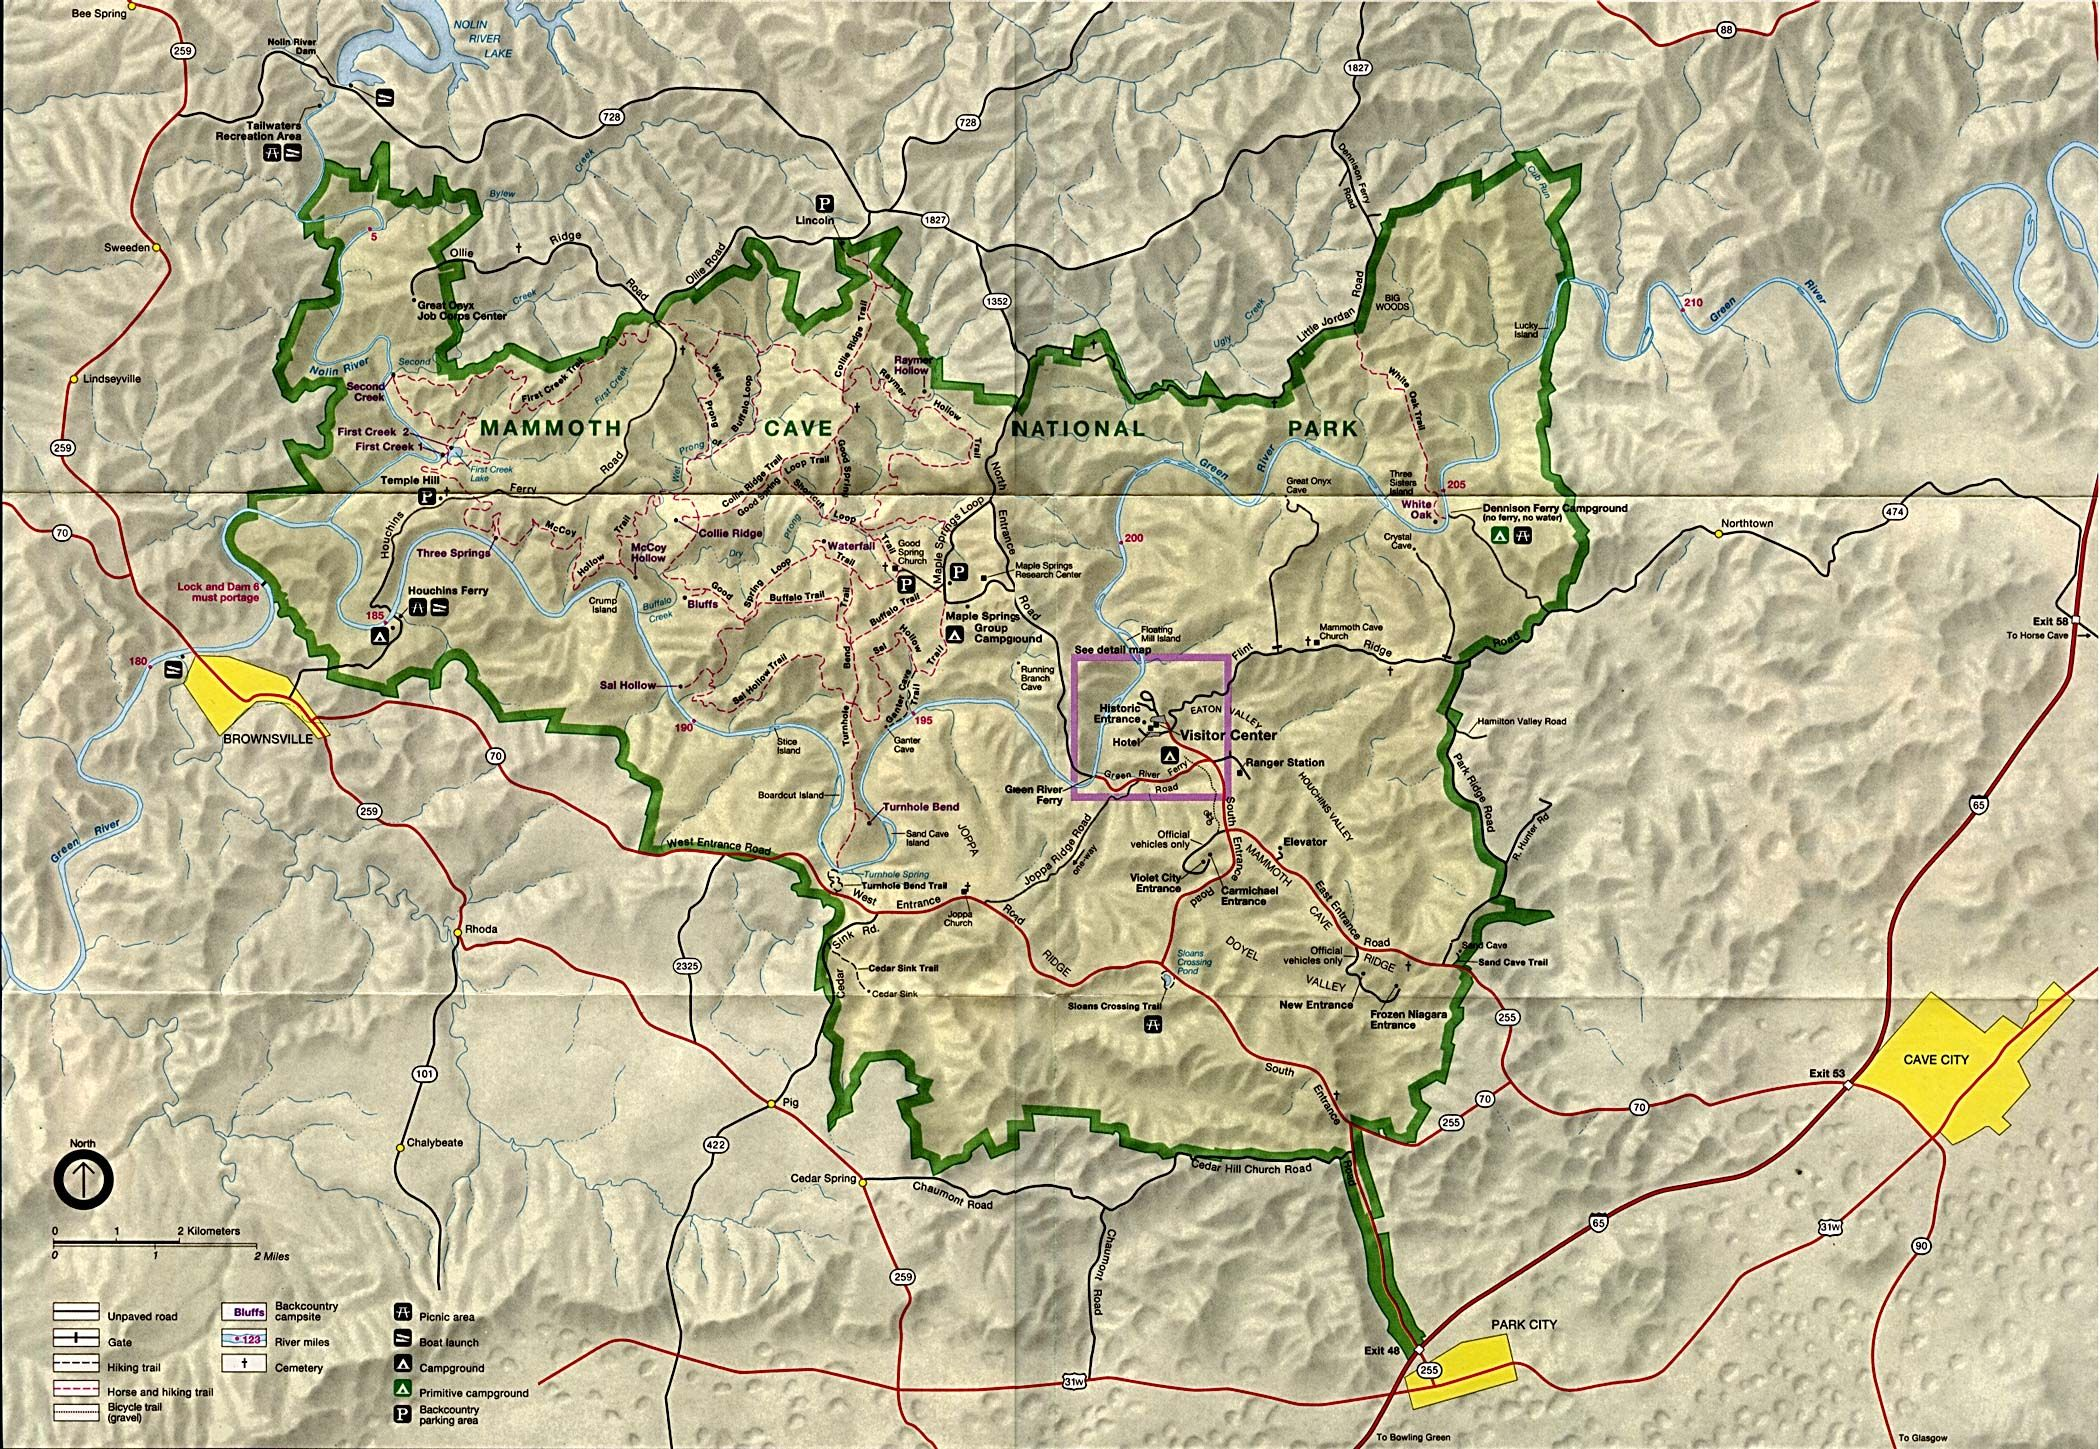 mammoth cave Mammoth Cave National Park Map See map details From